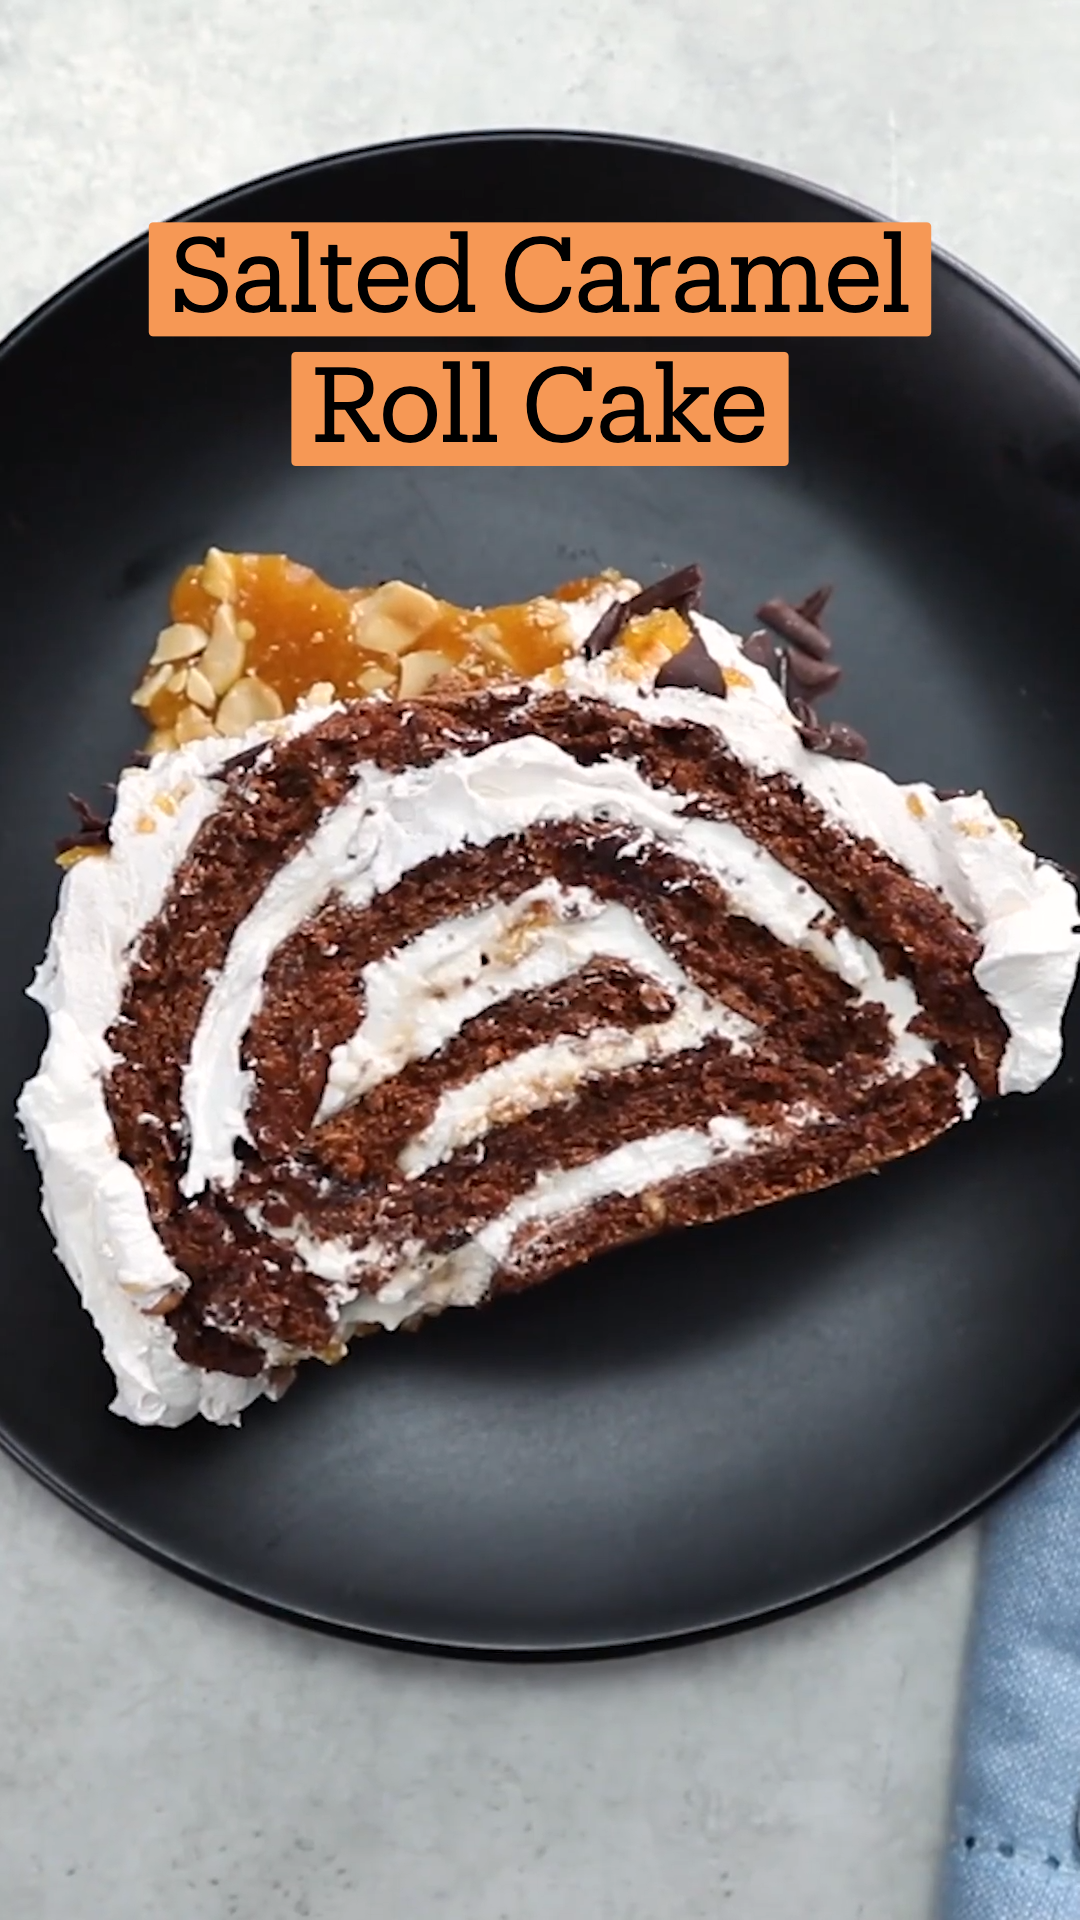 Photo of Salted Caramel Chocolate Roll Cake